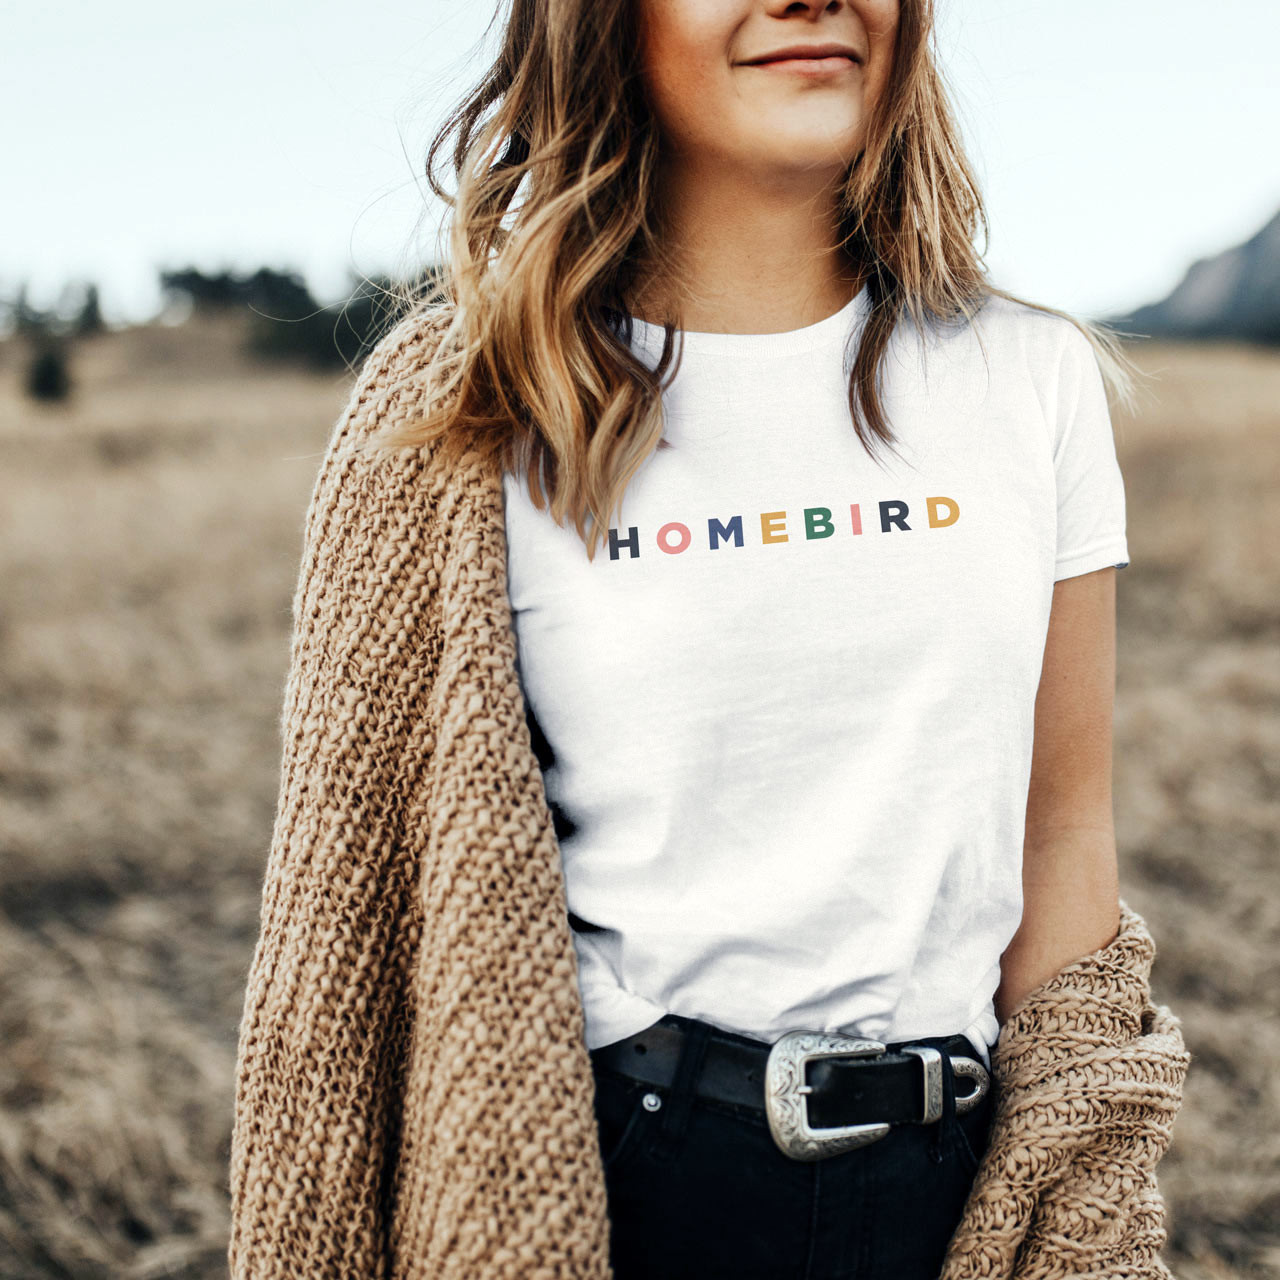 HOMEBIRD Cotton T-Shirt (Color on White) from The Printed Home